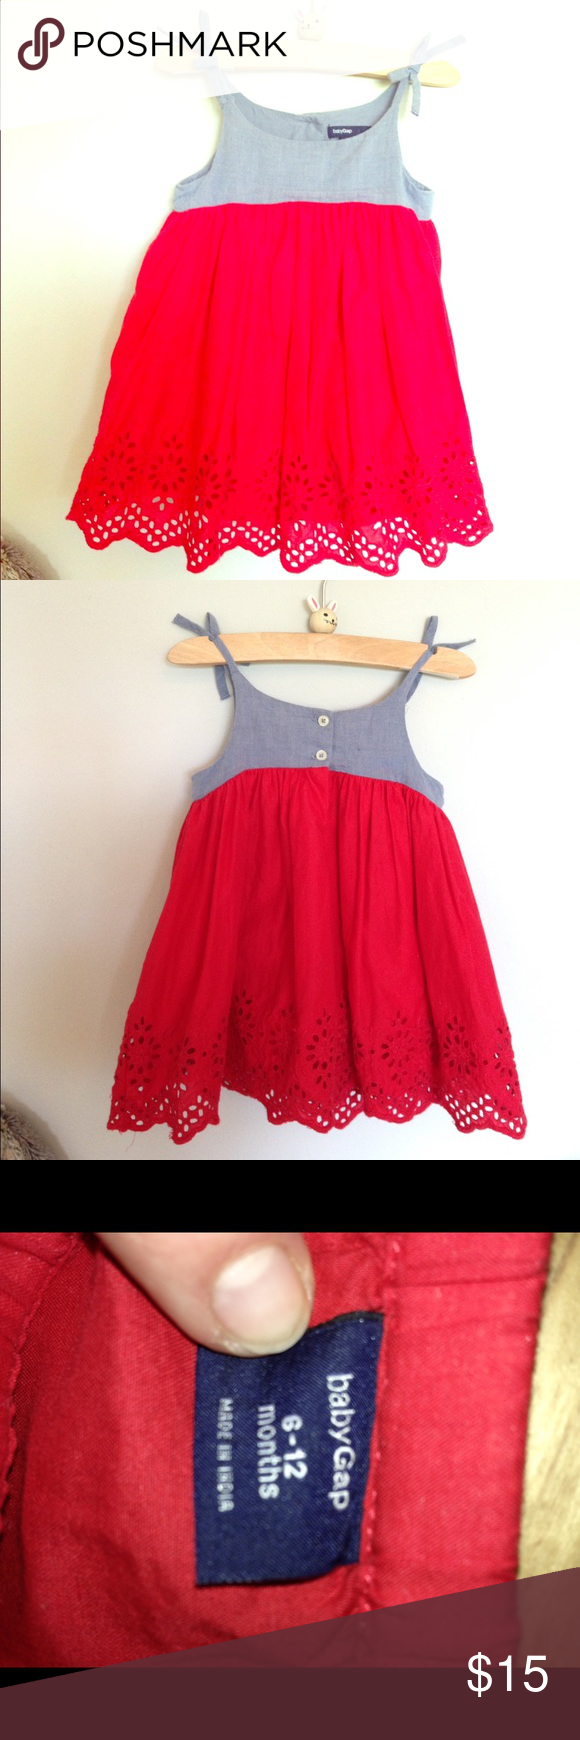 38345bbc23a Baby GAP Chambray and Red Eyelet Dress! Perfect 4th of July Dress! It s in